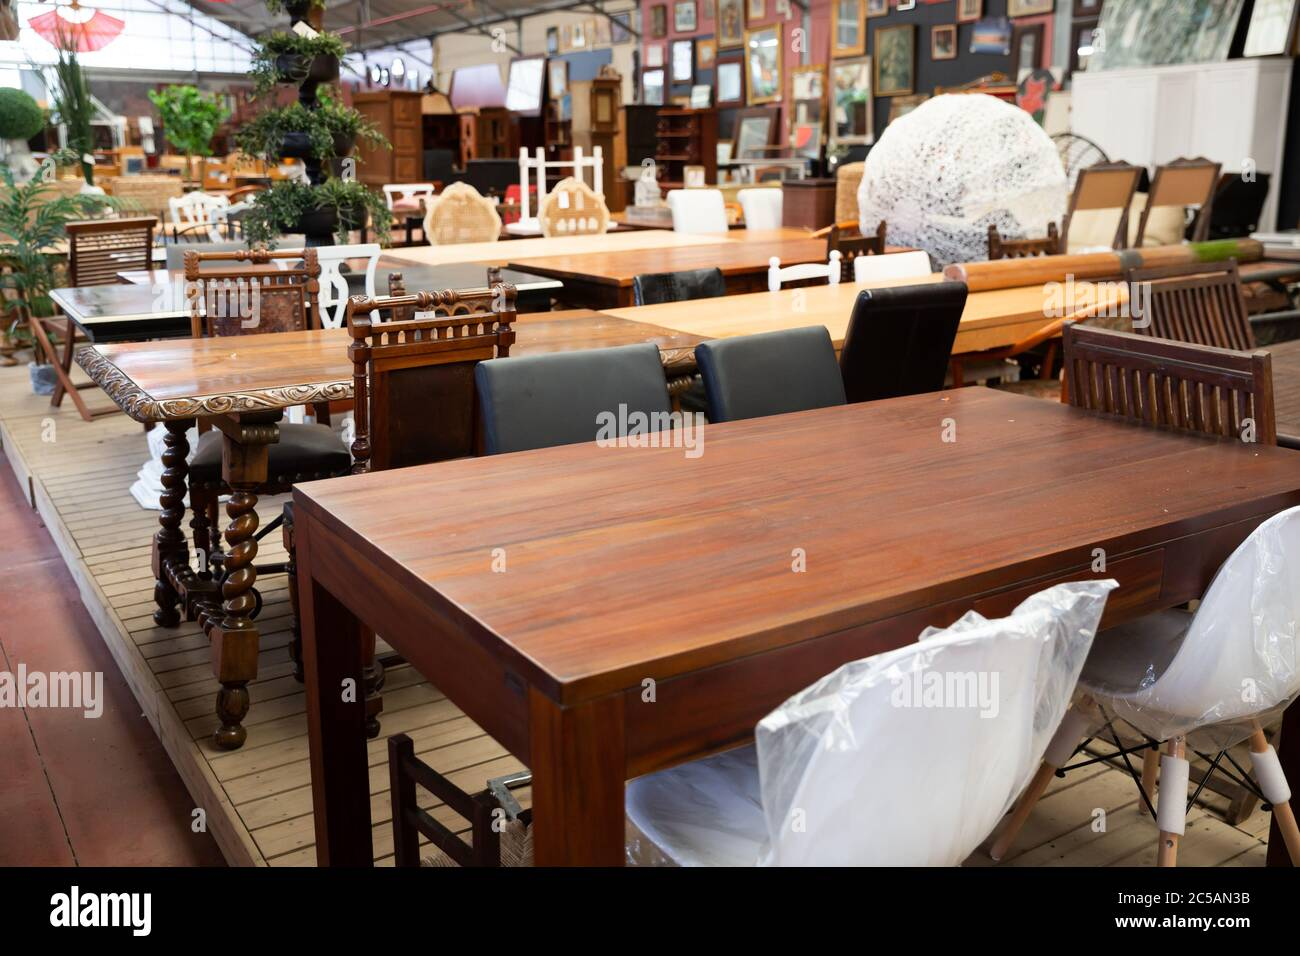 Wooden Tables Chairs And Other Furniture Offered For Sale In Store Stock Photo Alamy